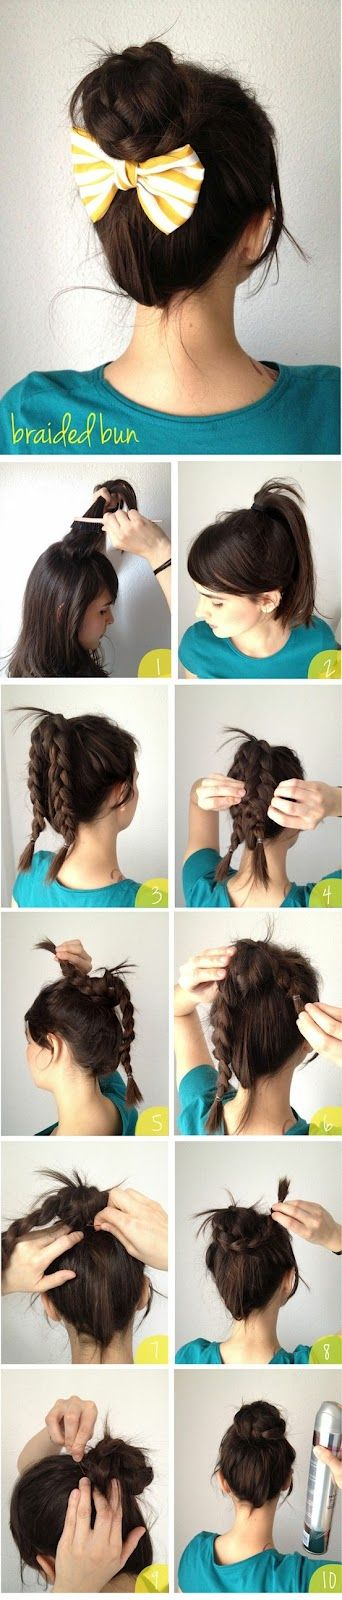 Braided Bun via 20 Fab Hair Styles You Can Try At Home | the perfect line